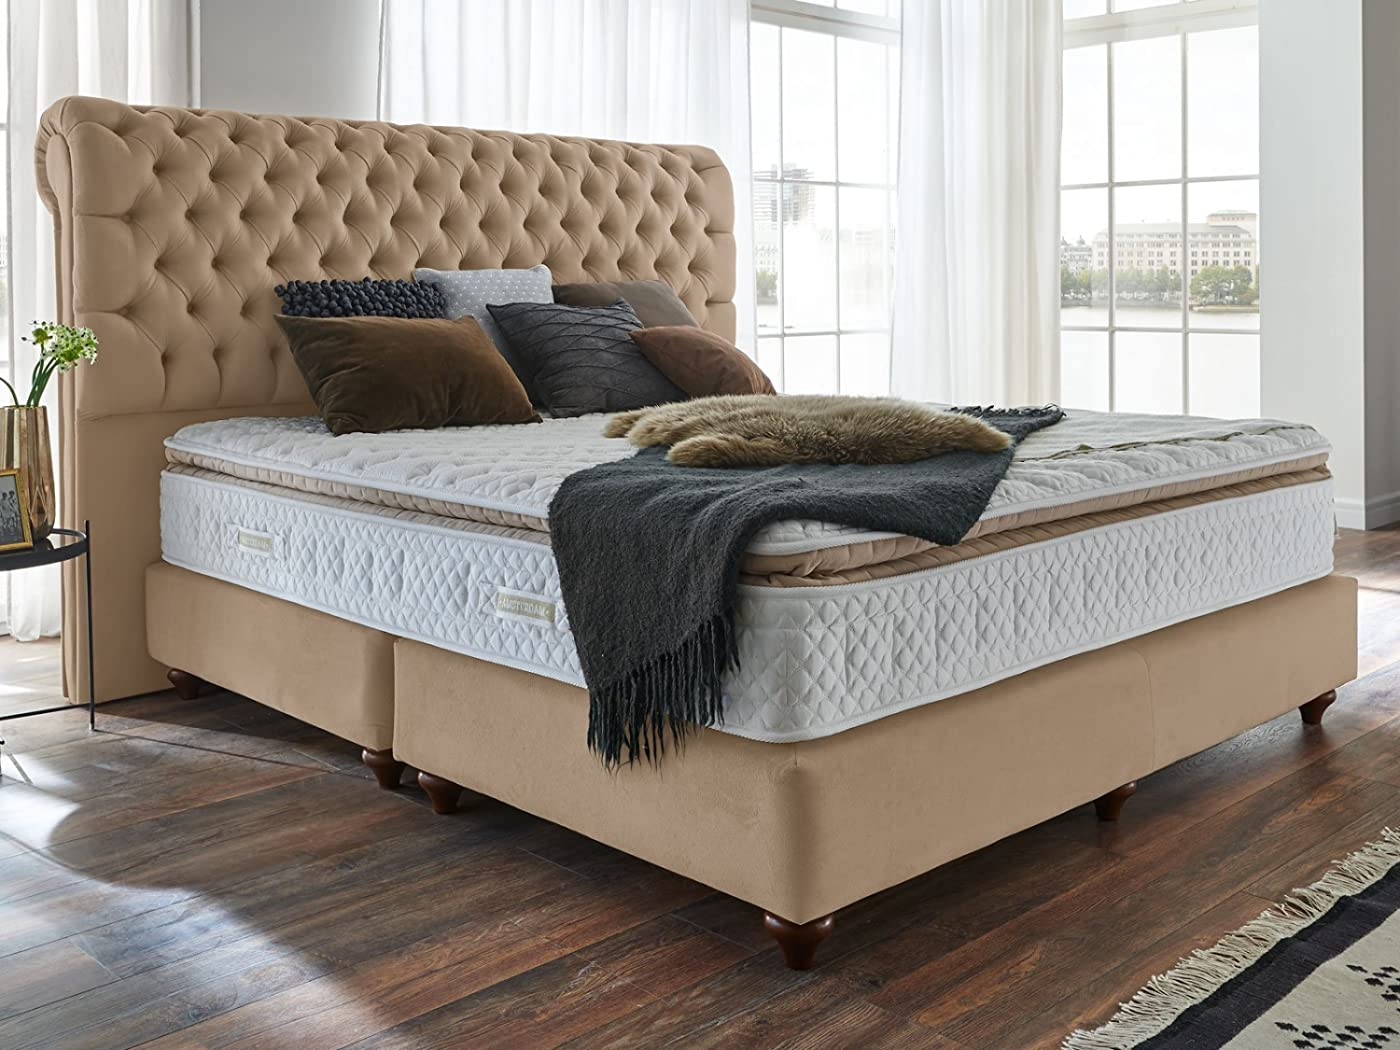 boxspringbett 160x200 140x200 beige velour montana. Black Bedroom Furniture Sets. Home Design Ideas